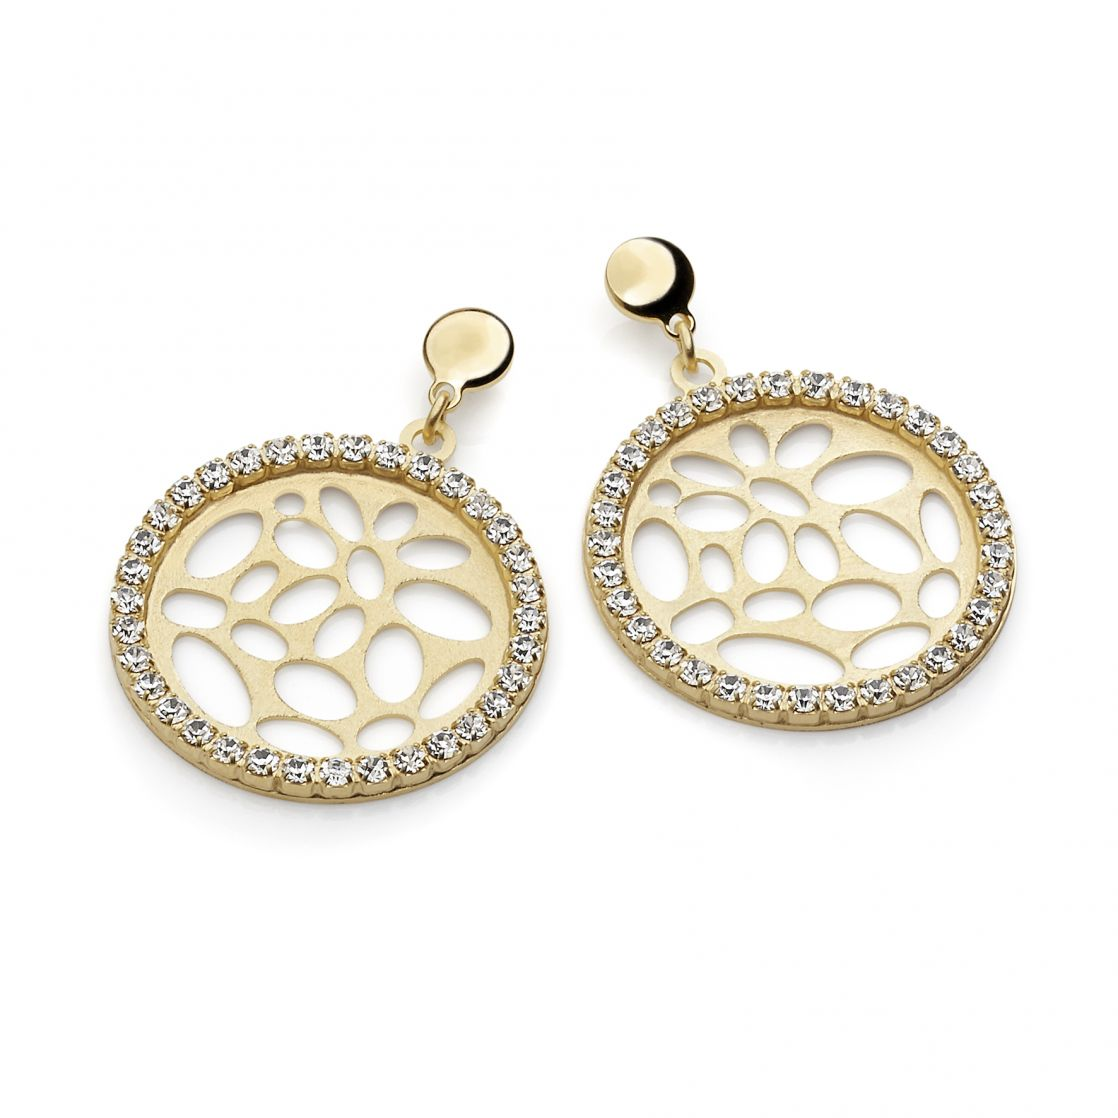 ROUND EARRINGS YELLOW GOLD PLATING